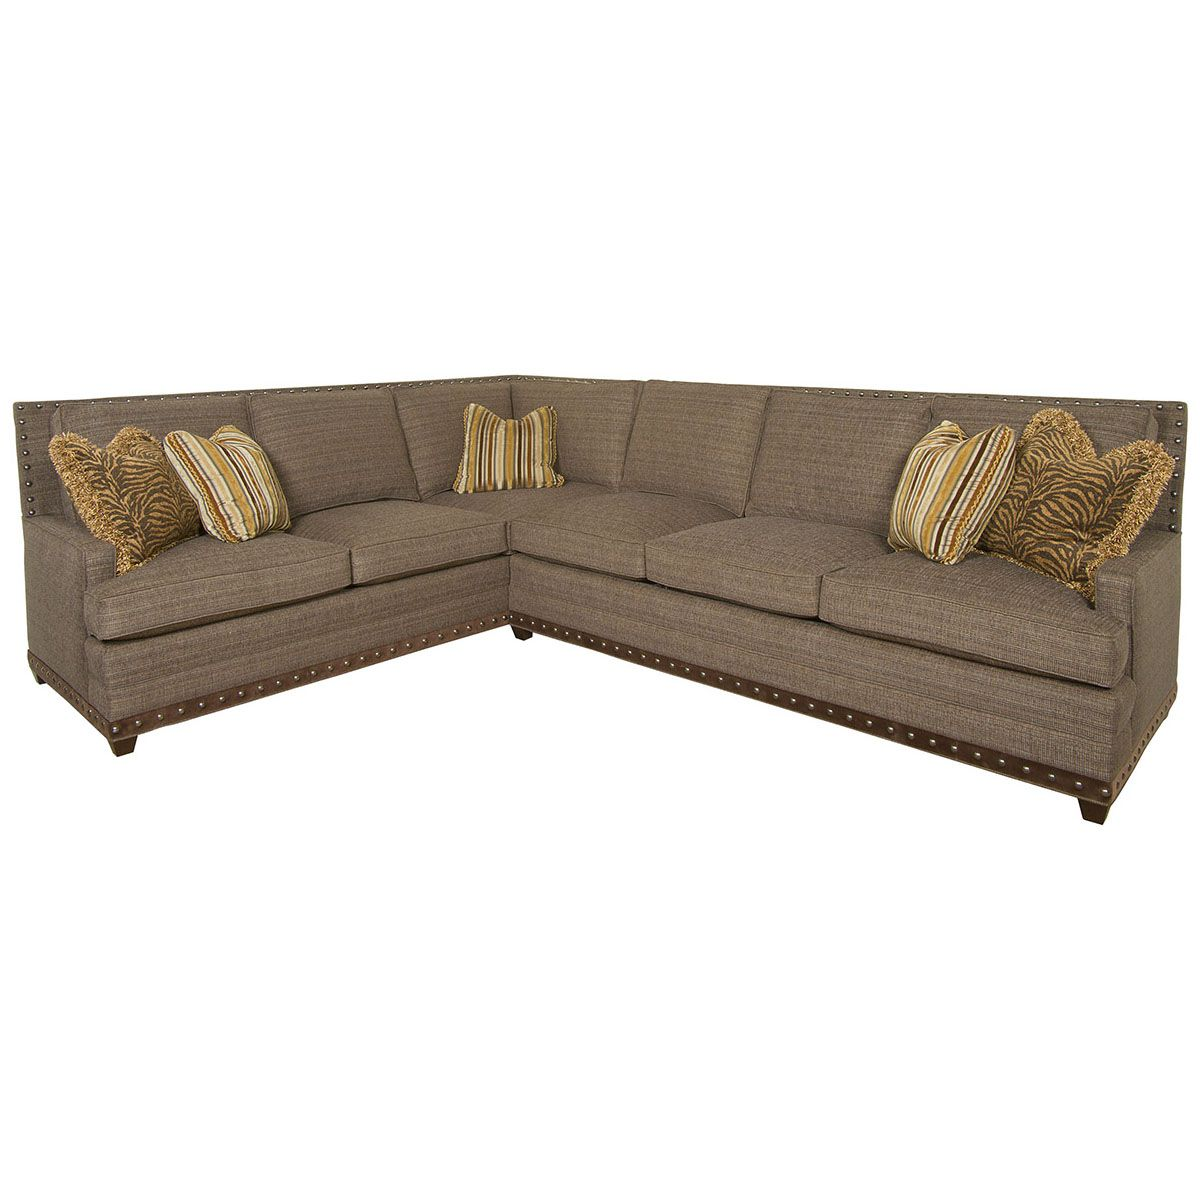 Vanguard Furniture Riverside Left Corner Sofa 604 LCS